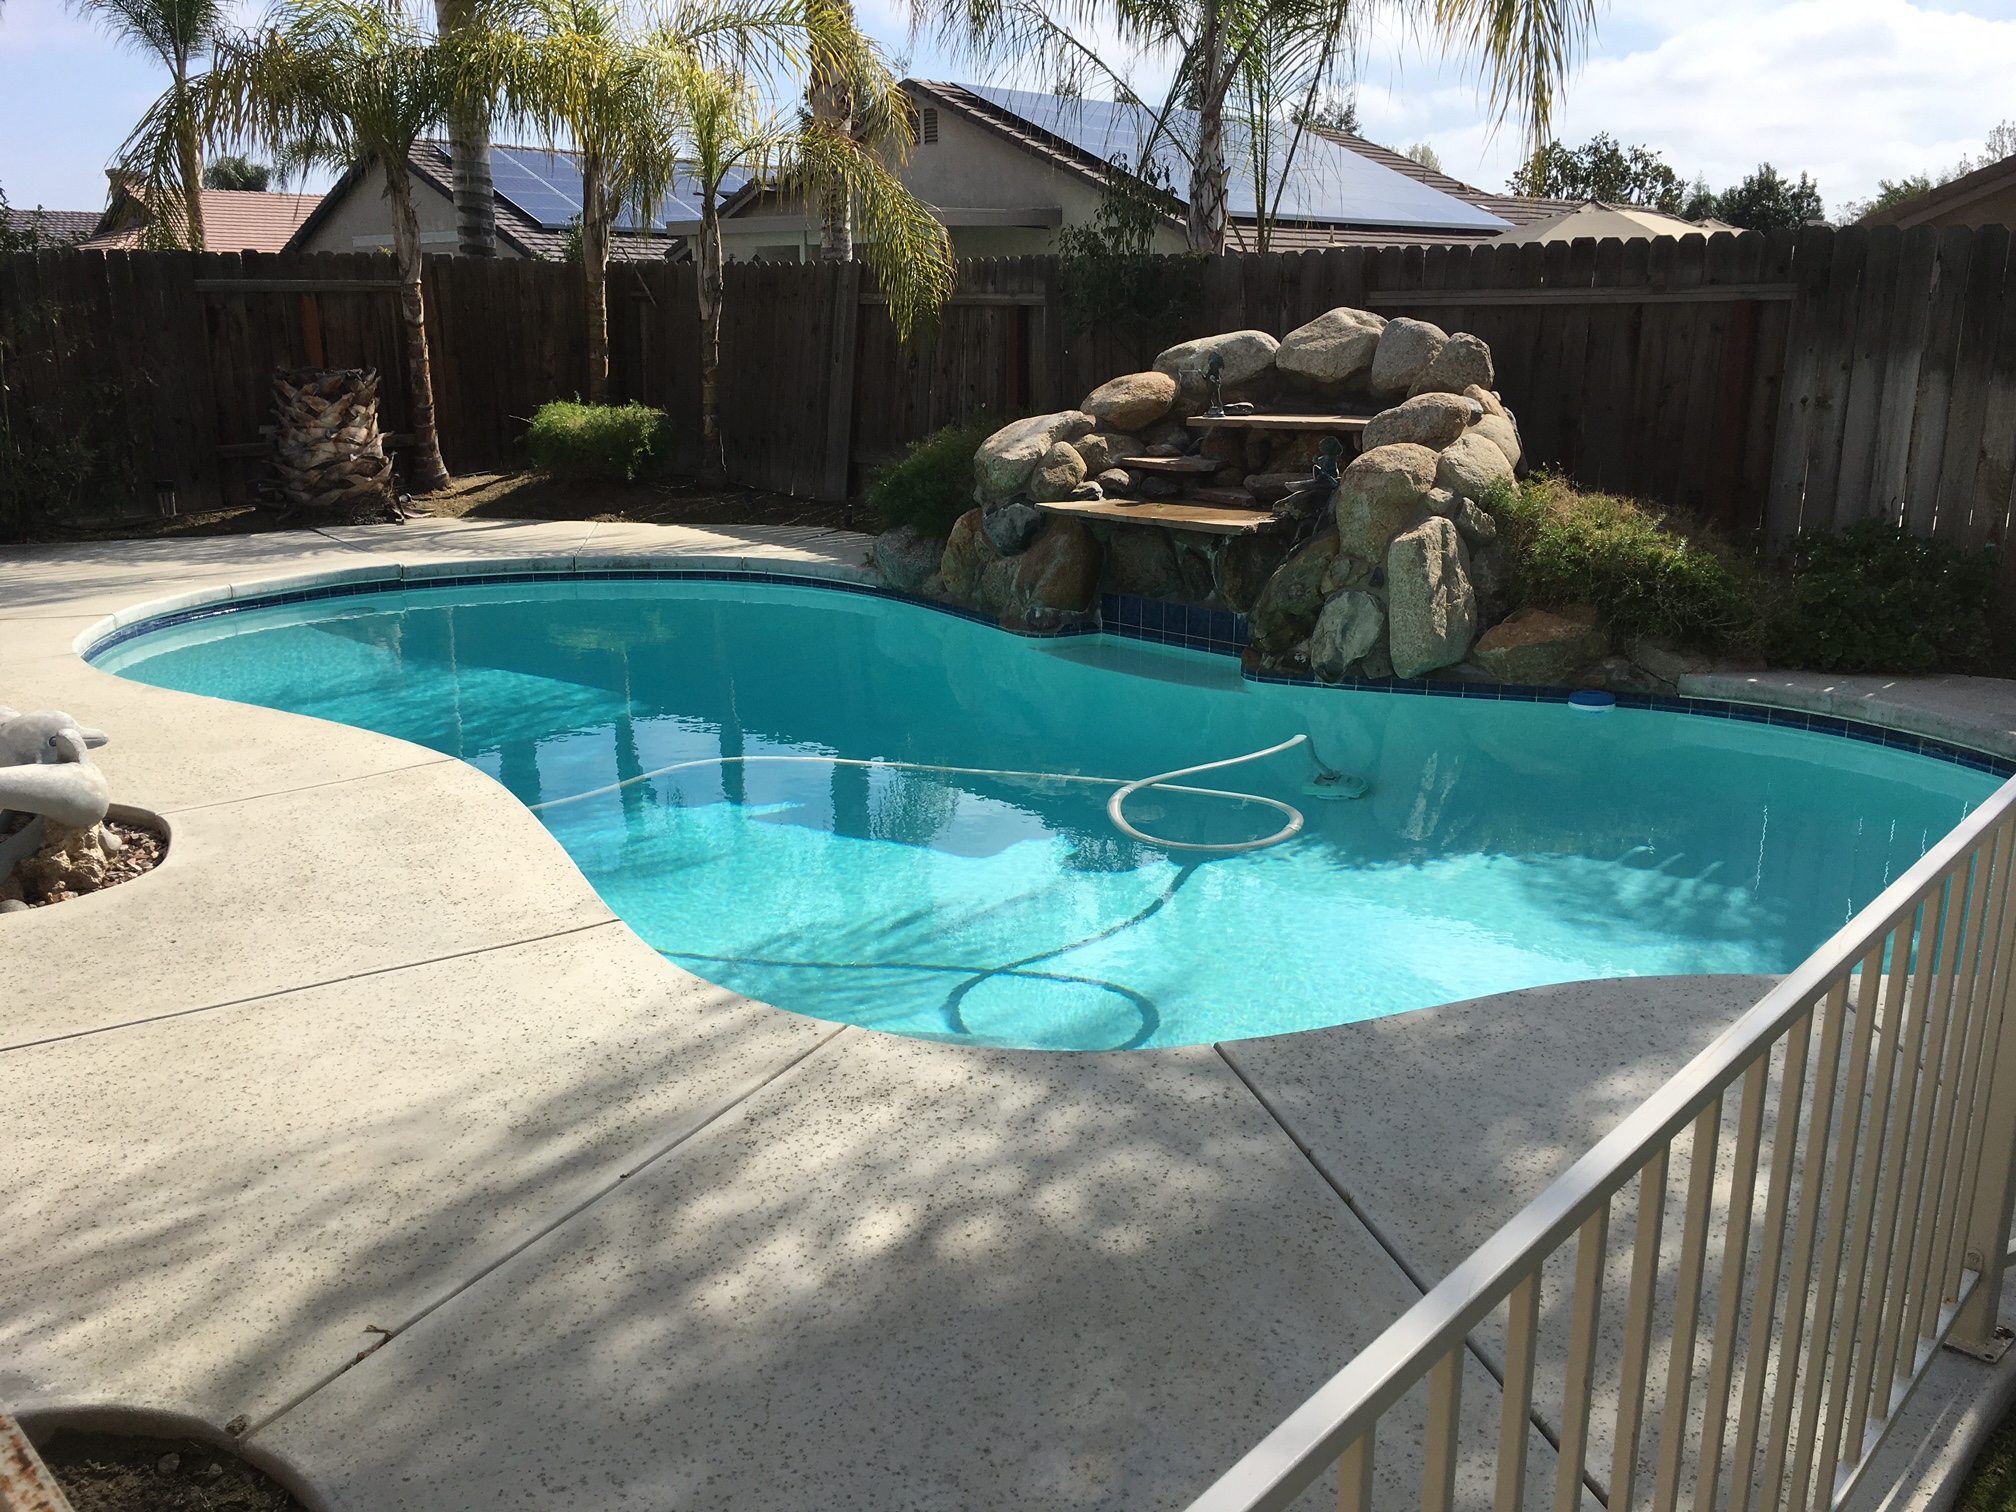 1950 11815 Leigh River St Bakersfield Ca 93312 Rented